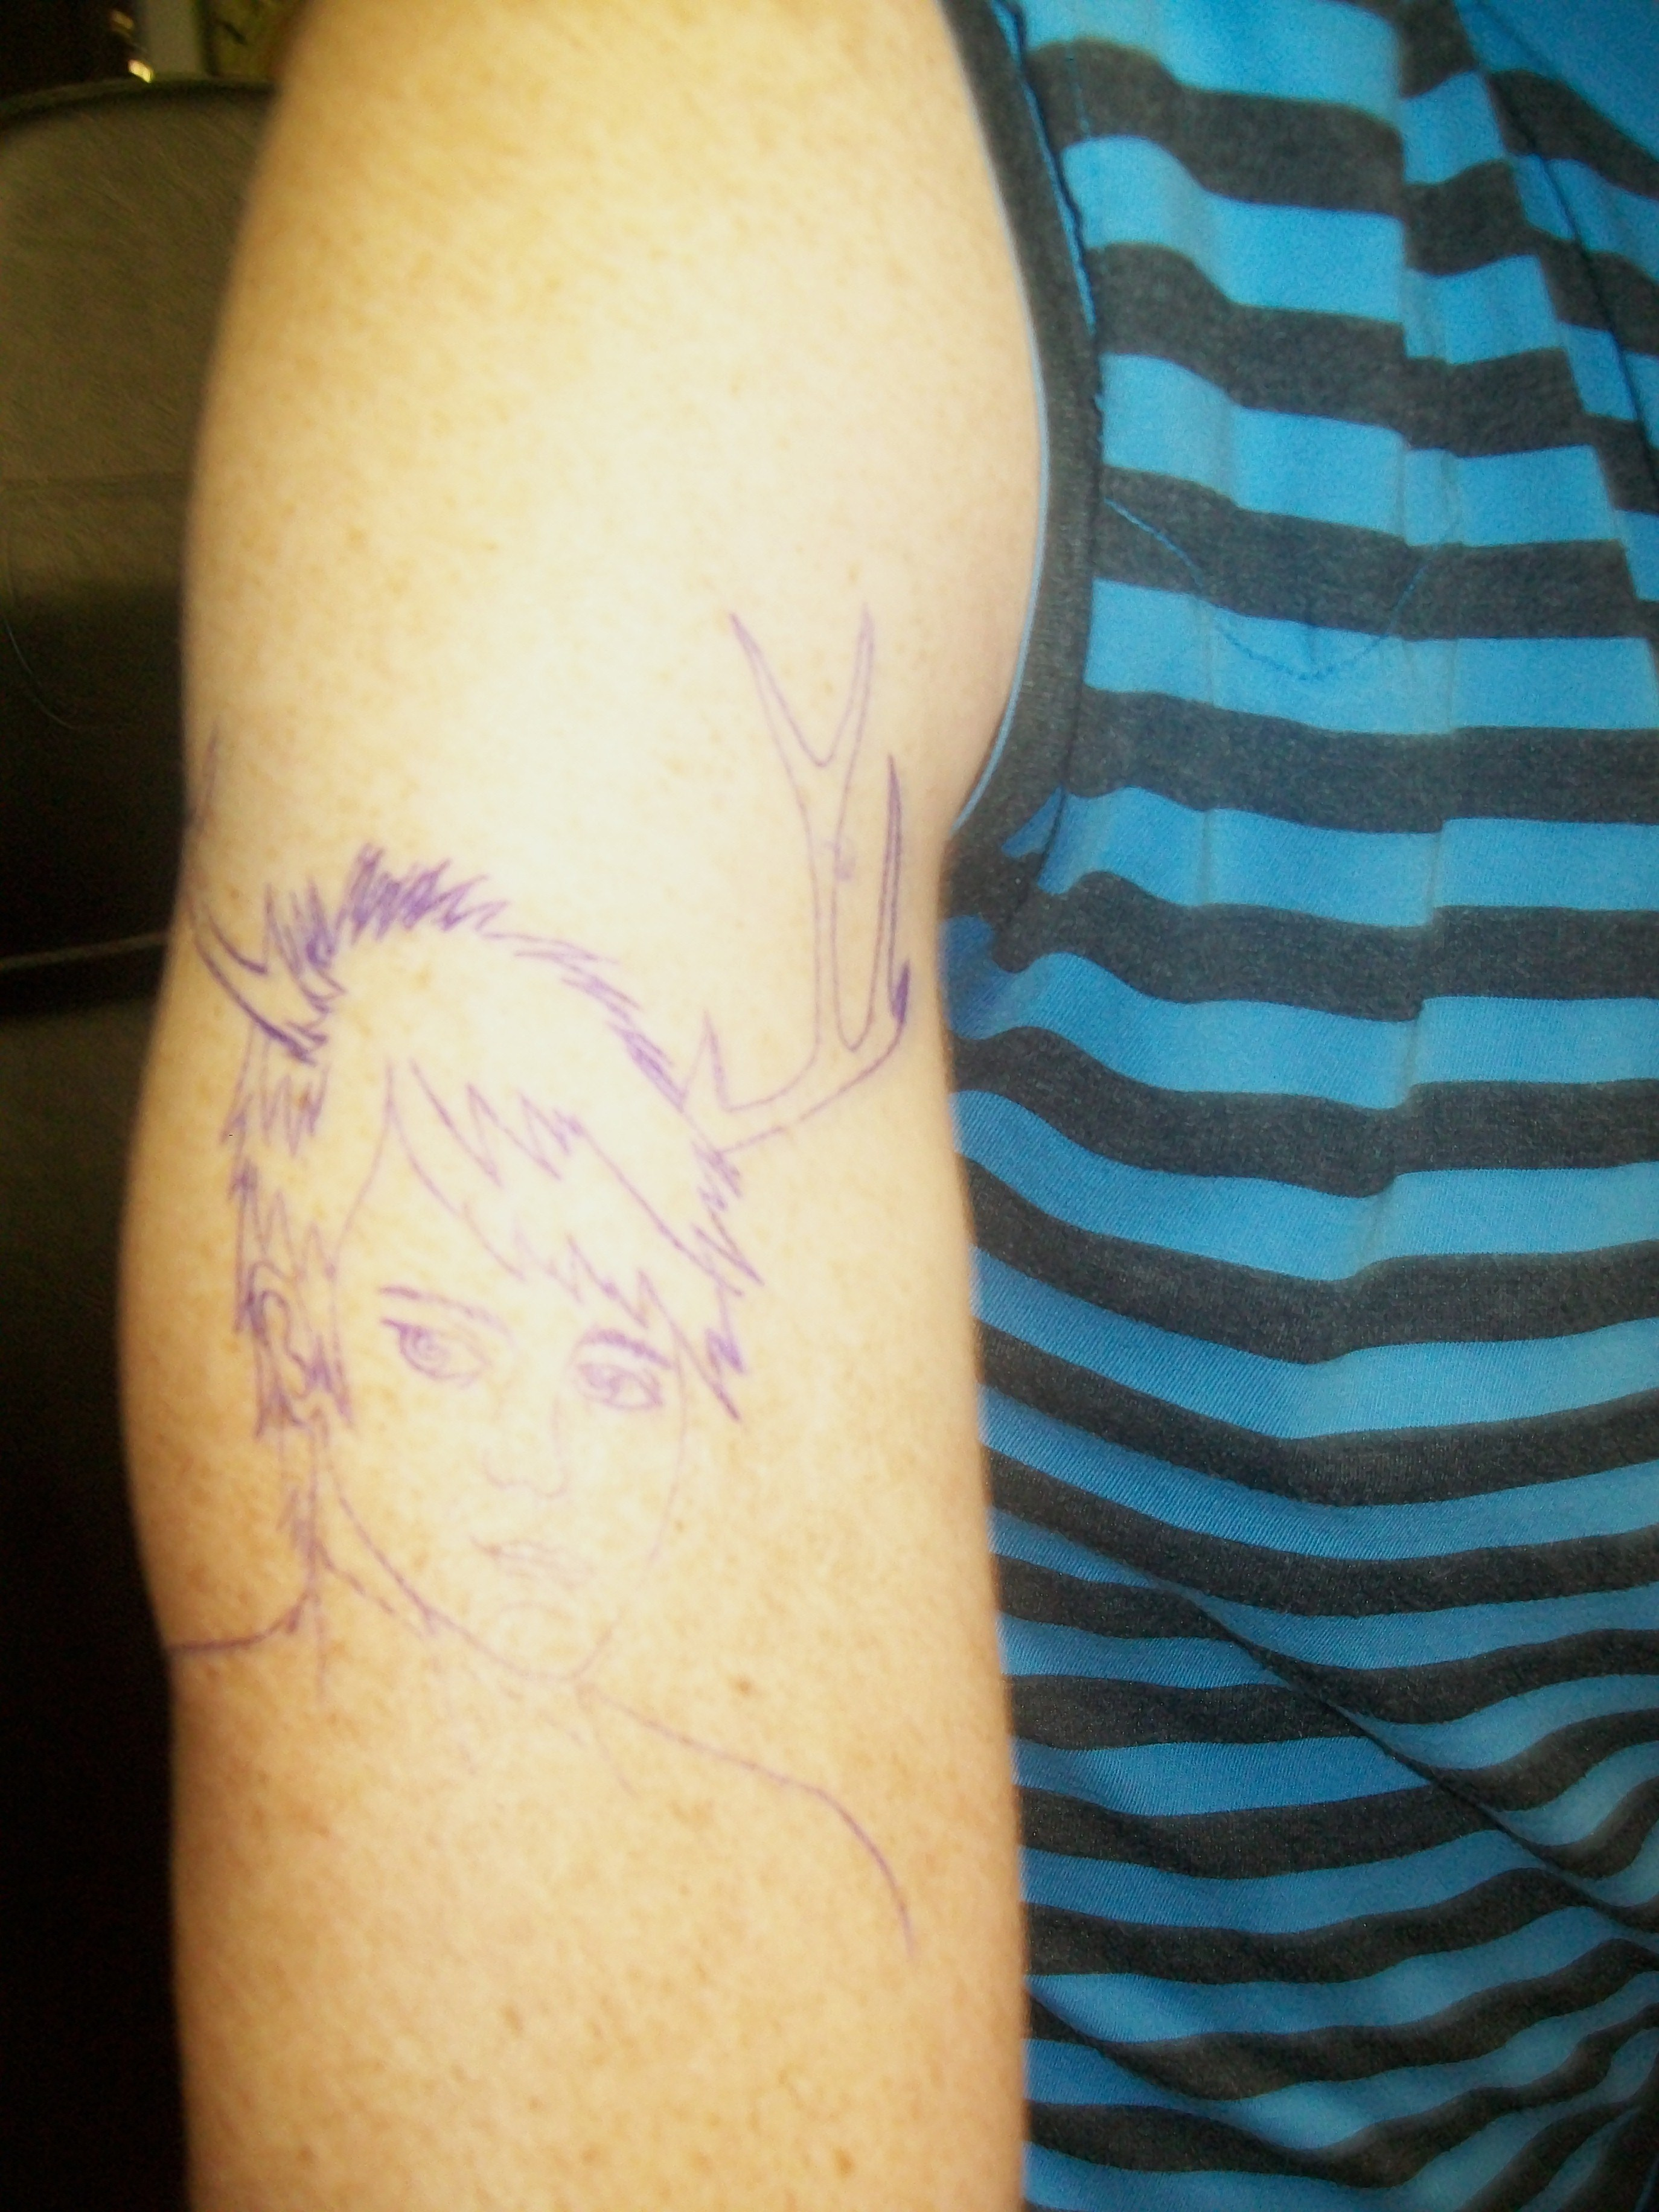 June 2013 Lucas Hargis Blank Human Body Diagram Tattoo The Stencil Applied We Planned Placement So Antlers Wrap Around My Baby Deltoid